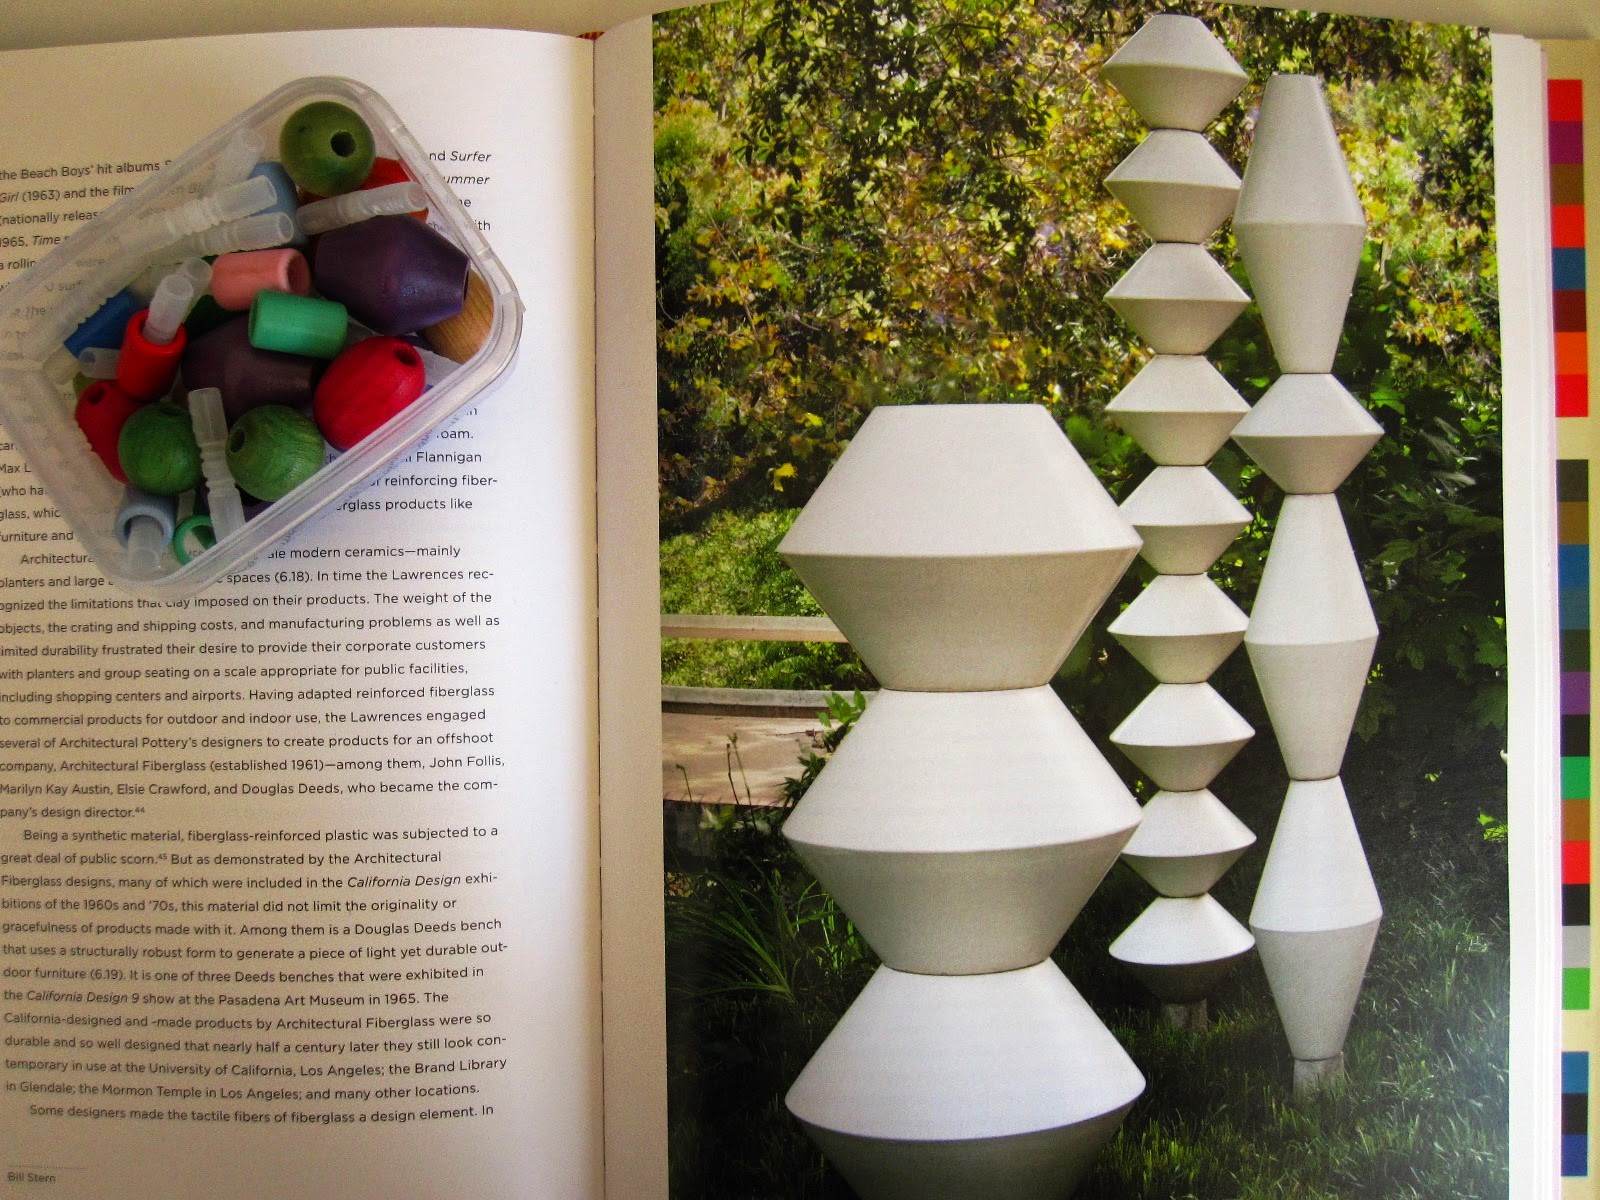 Picture in a book of La Gardo Tackett's garden sculptures, with a container of wooden beads next to it.